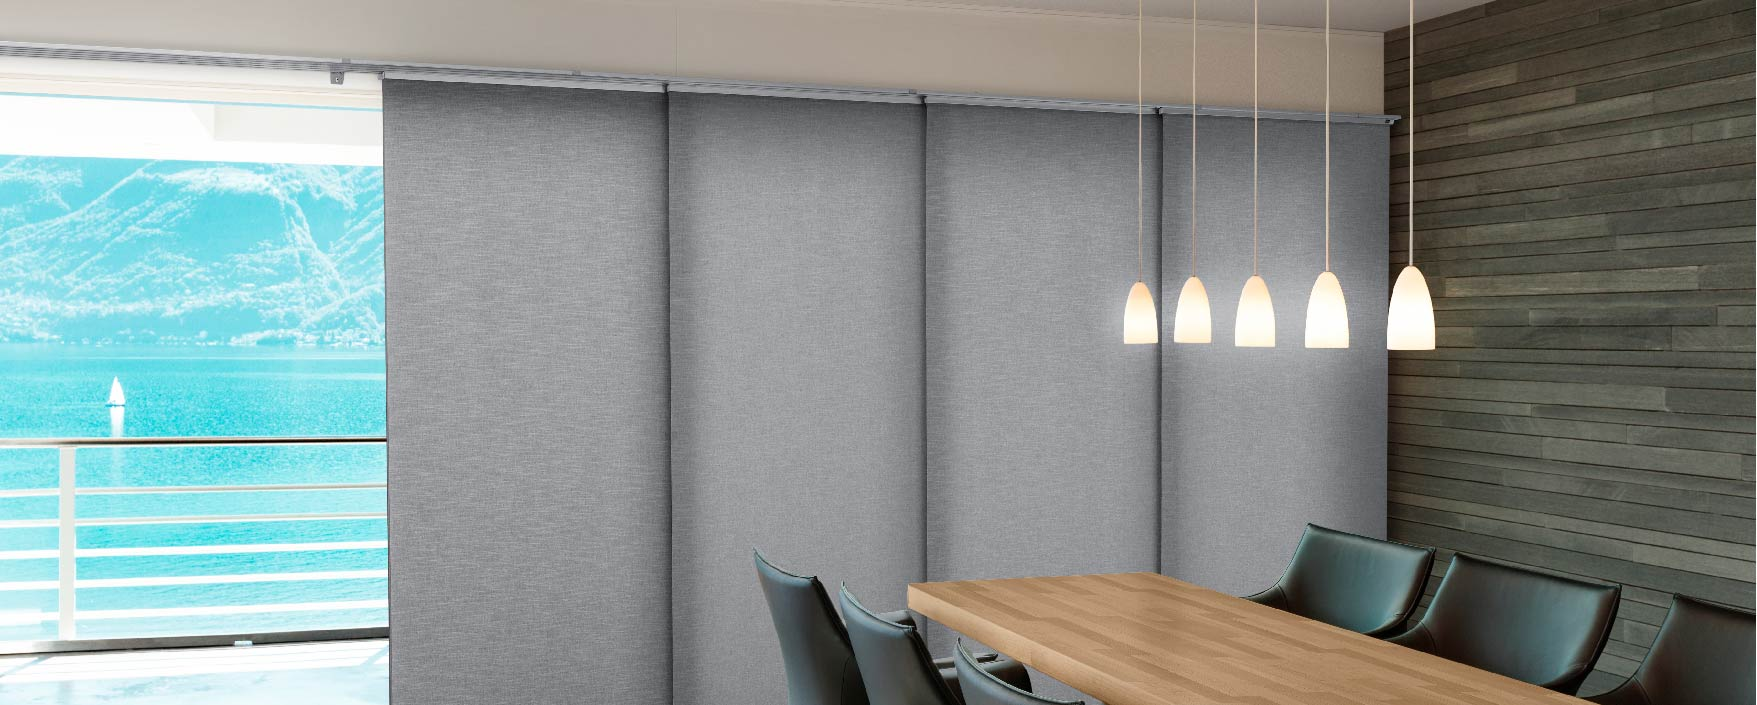 Panel Glide Blinds | Panel Blinds | Mackay Curtain Making Service Mackay